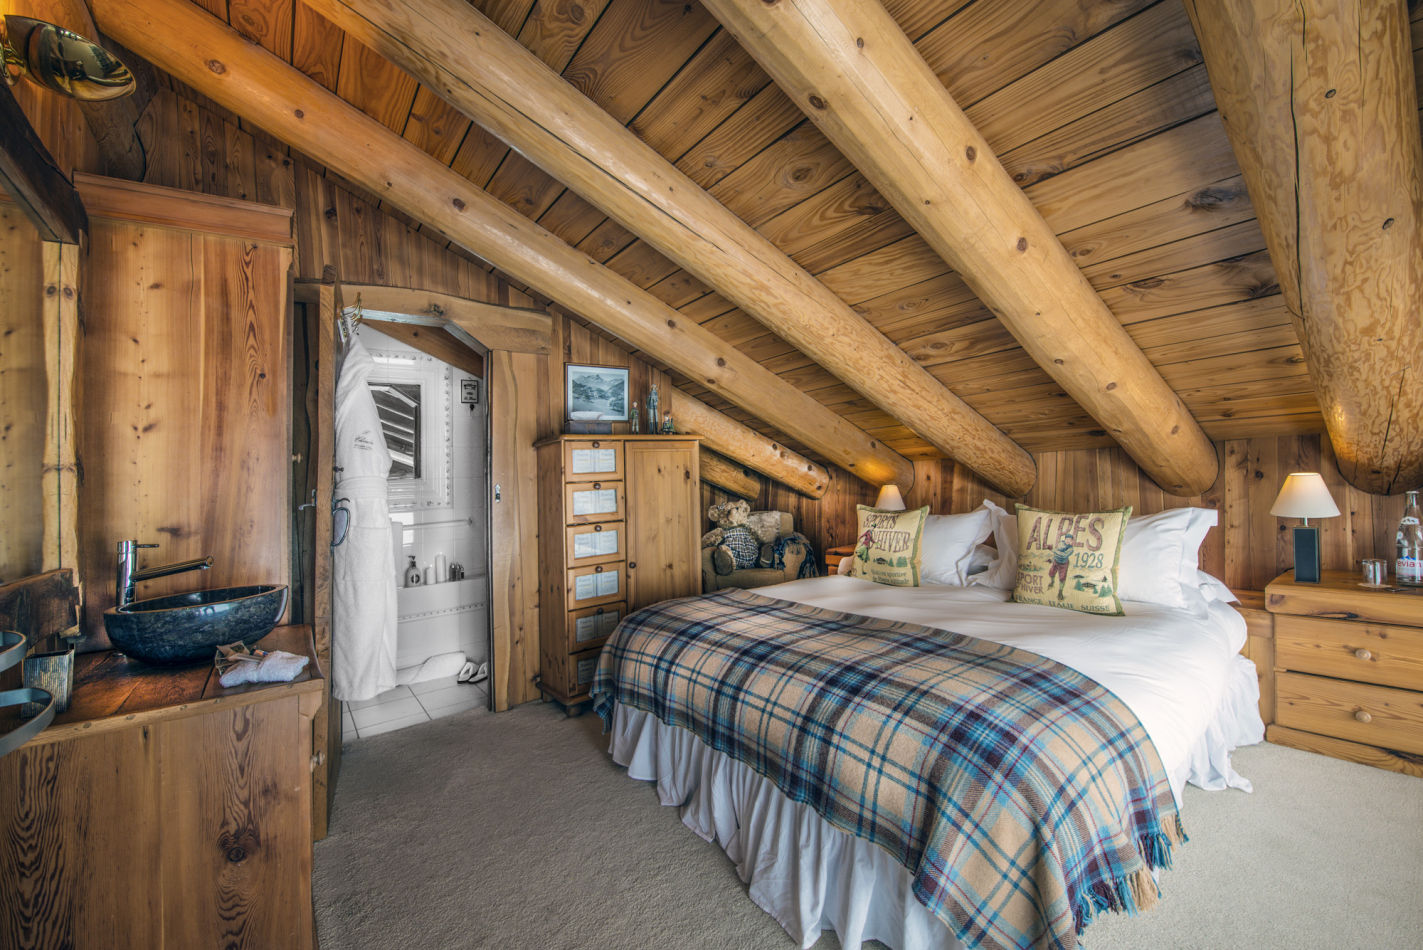 Chalet Le Chardon master bedroom with large wooden beamed celining.